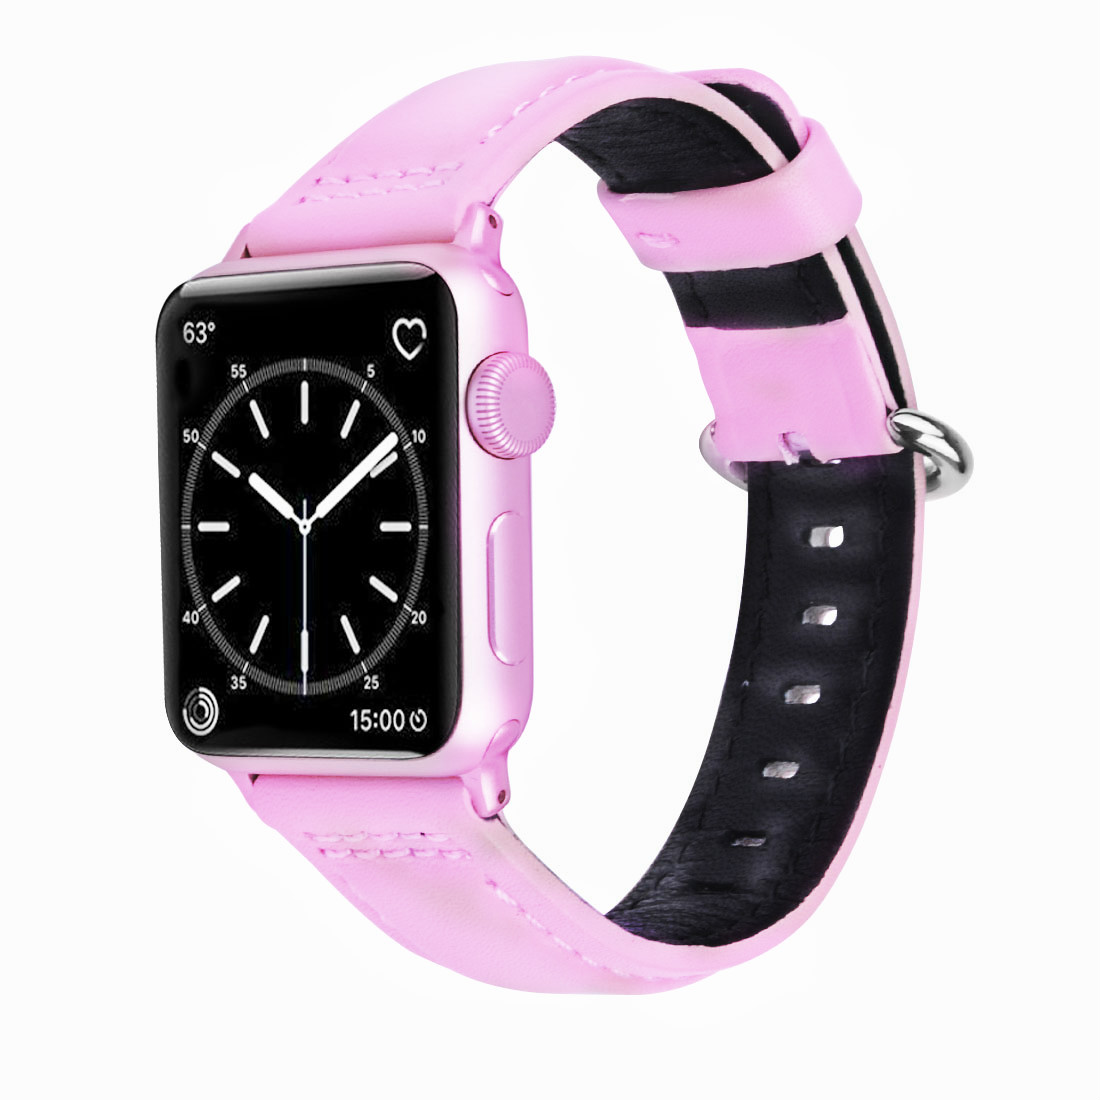 Apple Watch Band Wolait Soft Genuine Sheep Leather Bands Strap For Series 2 38mm Black 3 1 Rose Gold